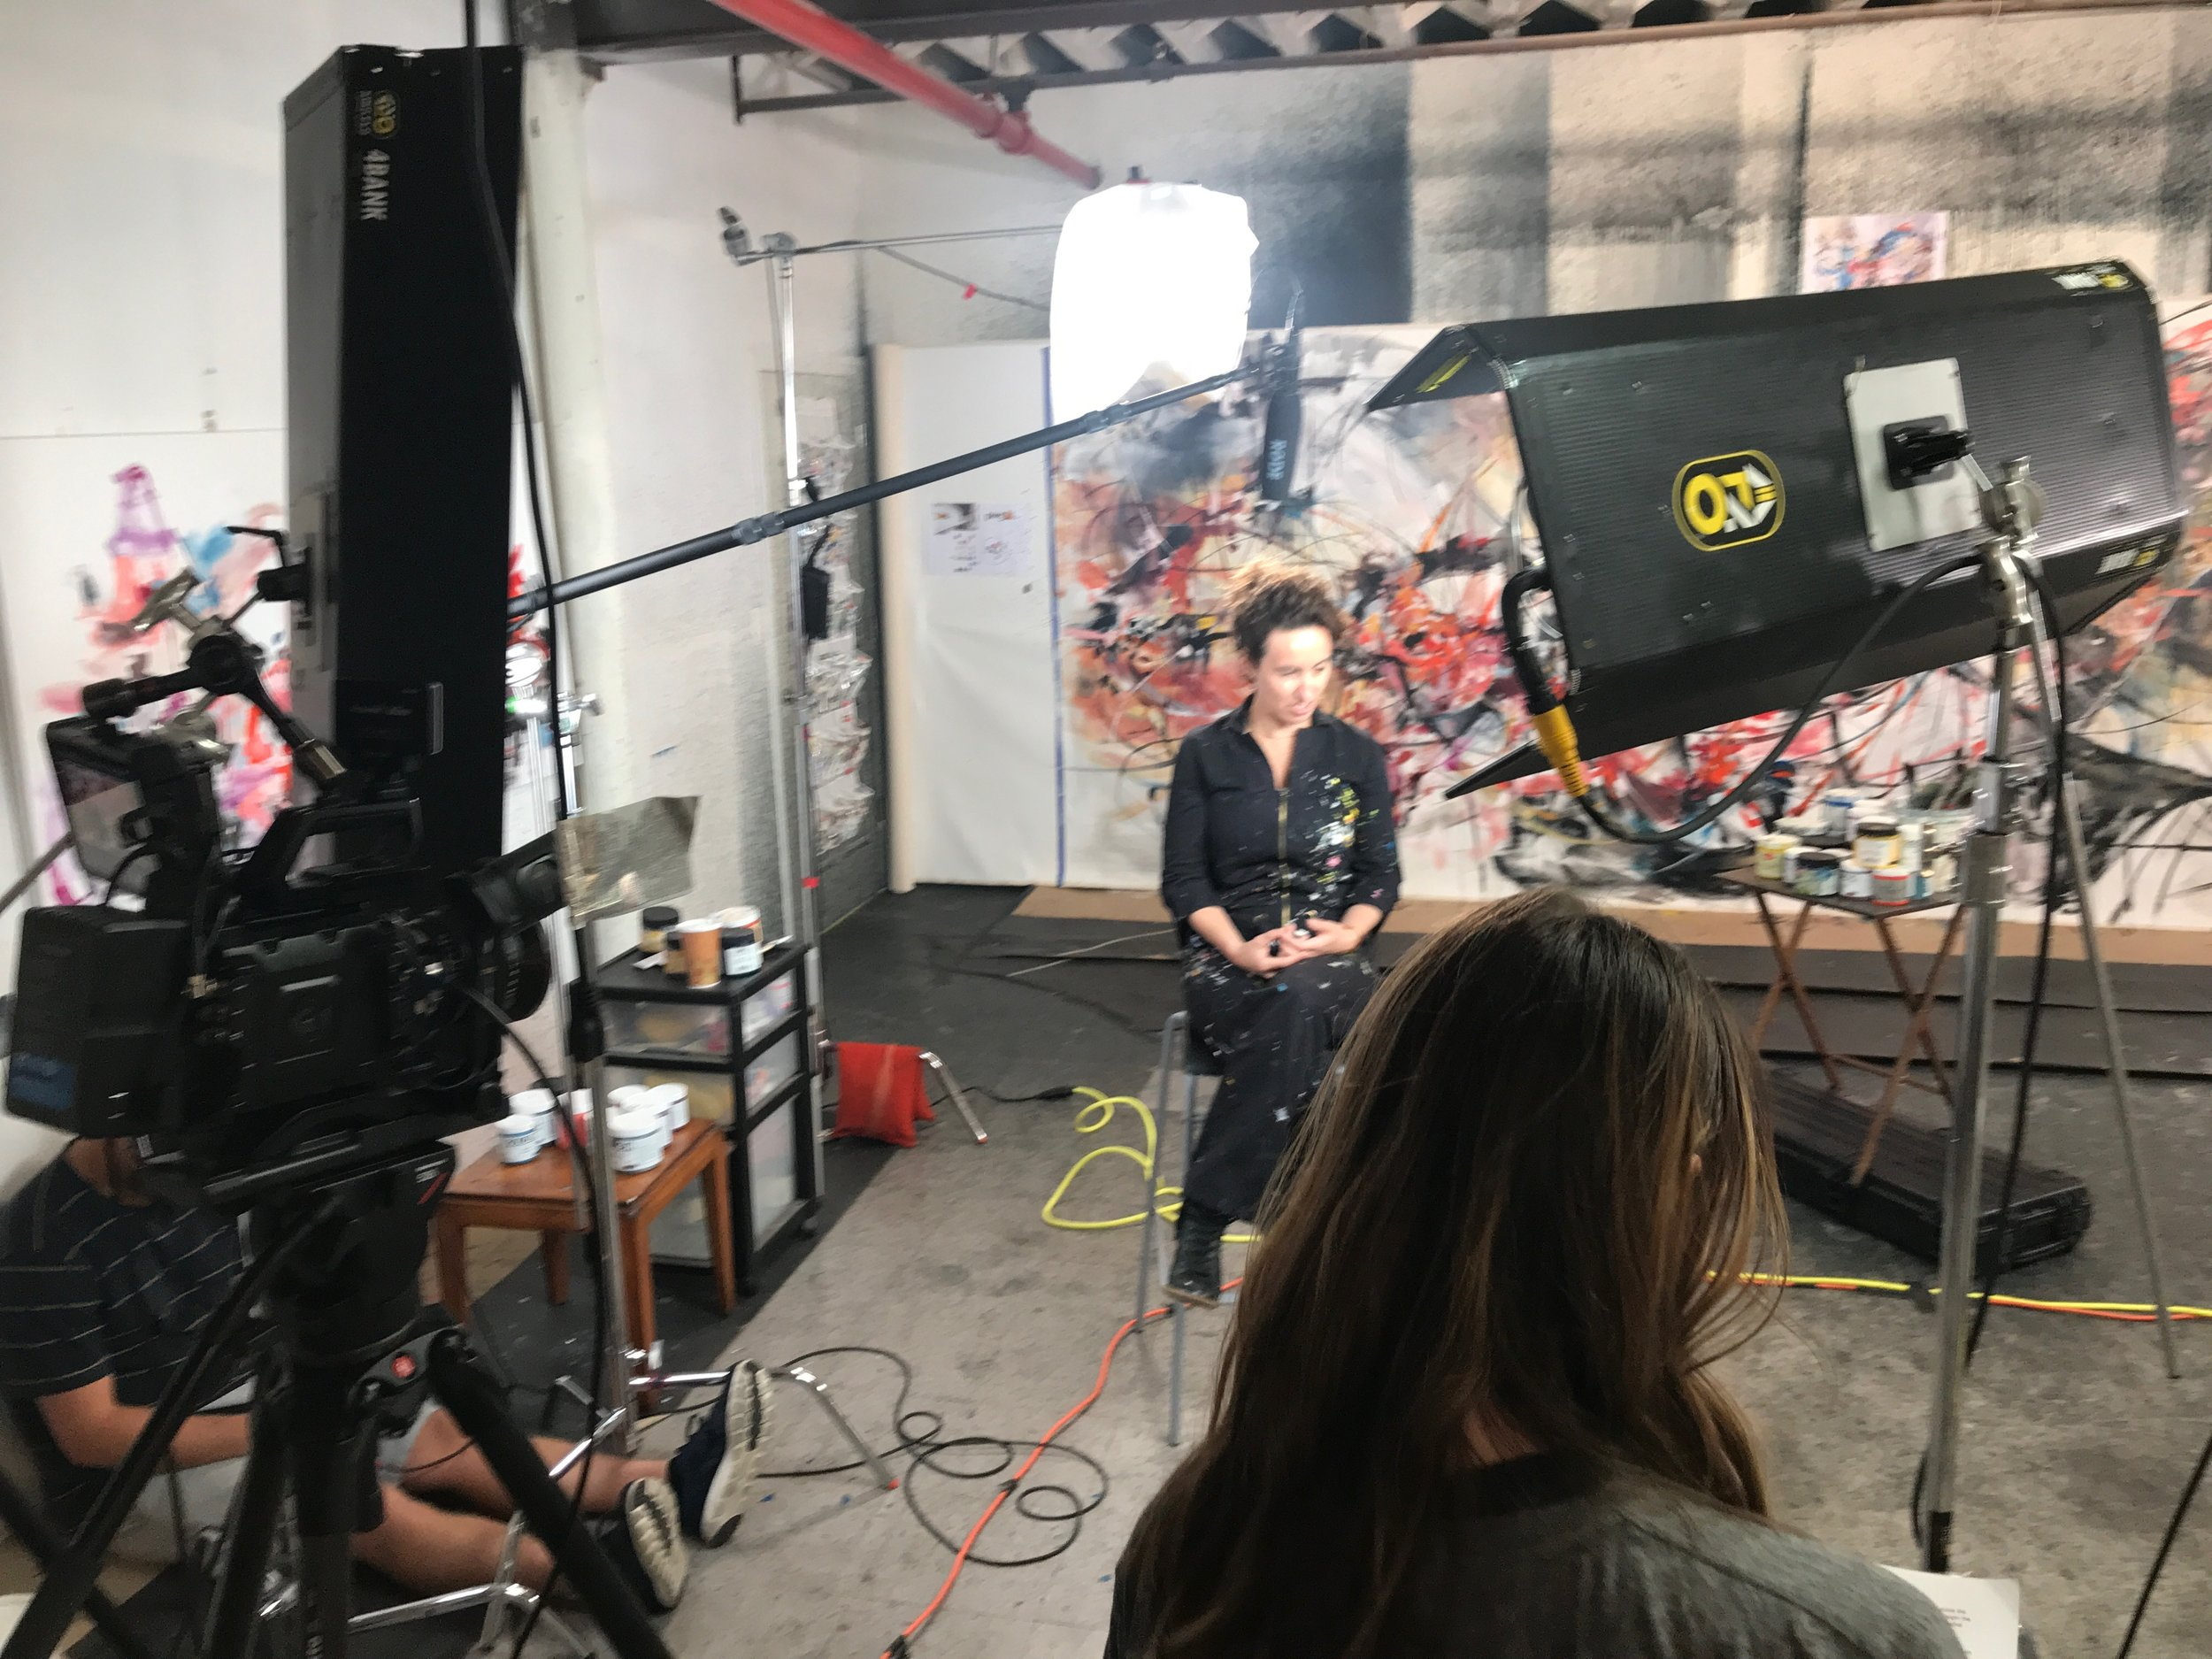 Kino Flos and Aputure LED's used in this interview setup.